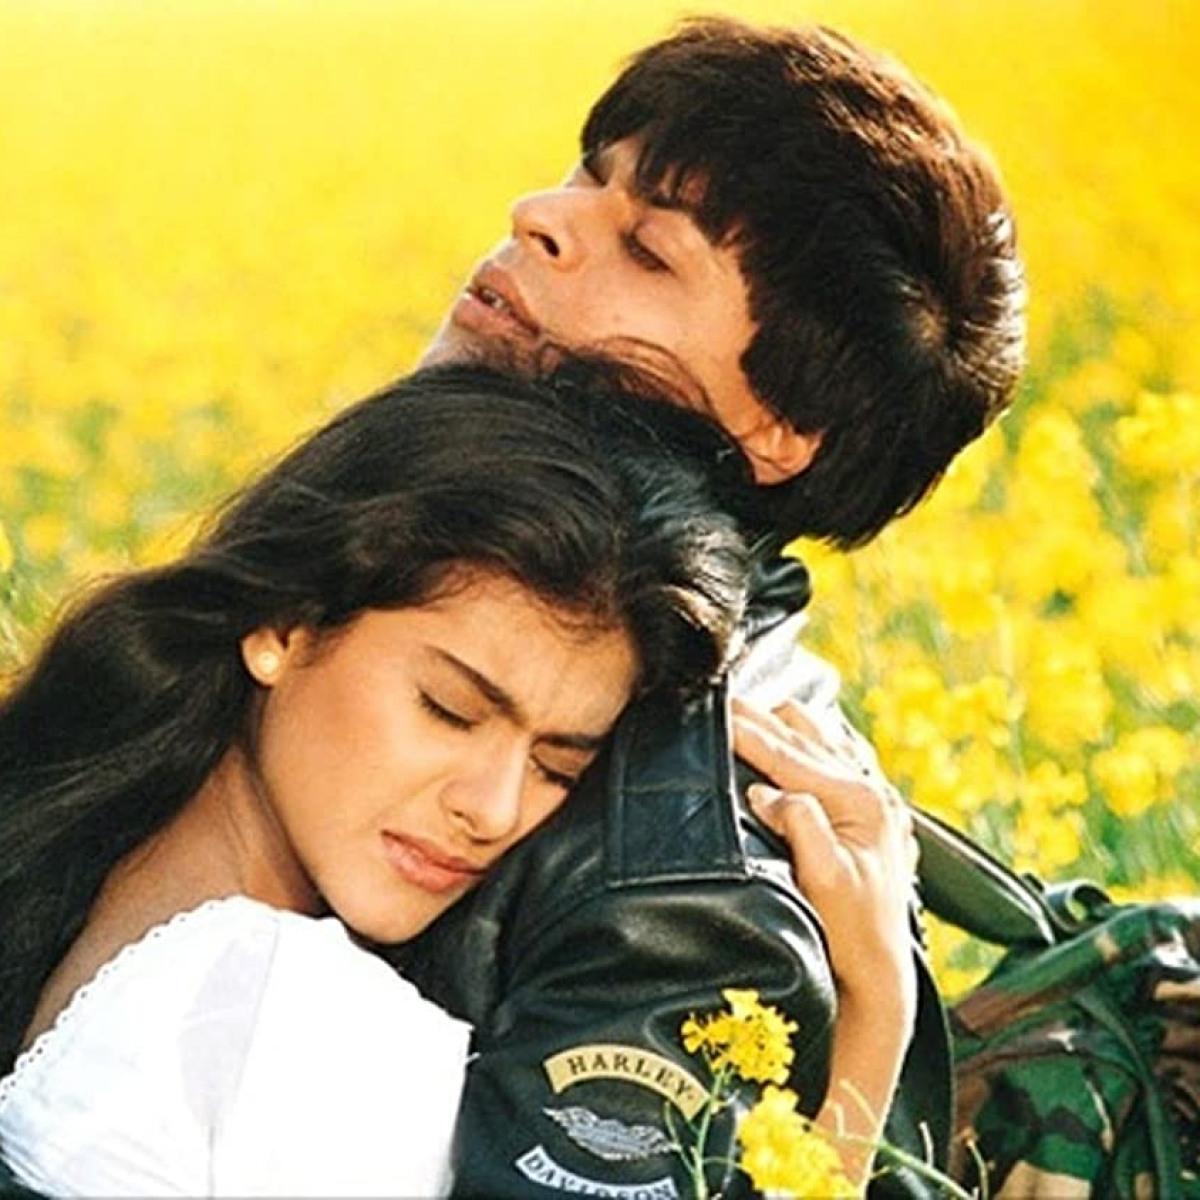 25 Years of DDLJ: Shah Rukh Khan-Kajol's statue to be unveiled at London's 'Scenes in the Square'